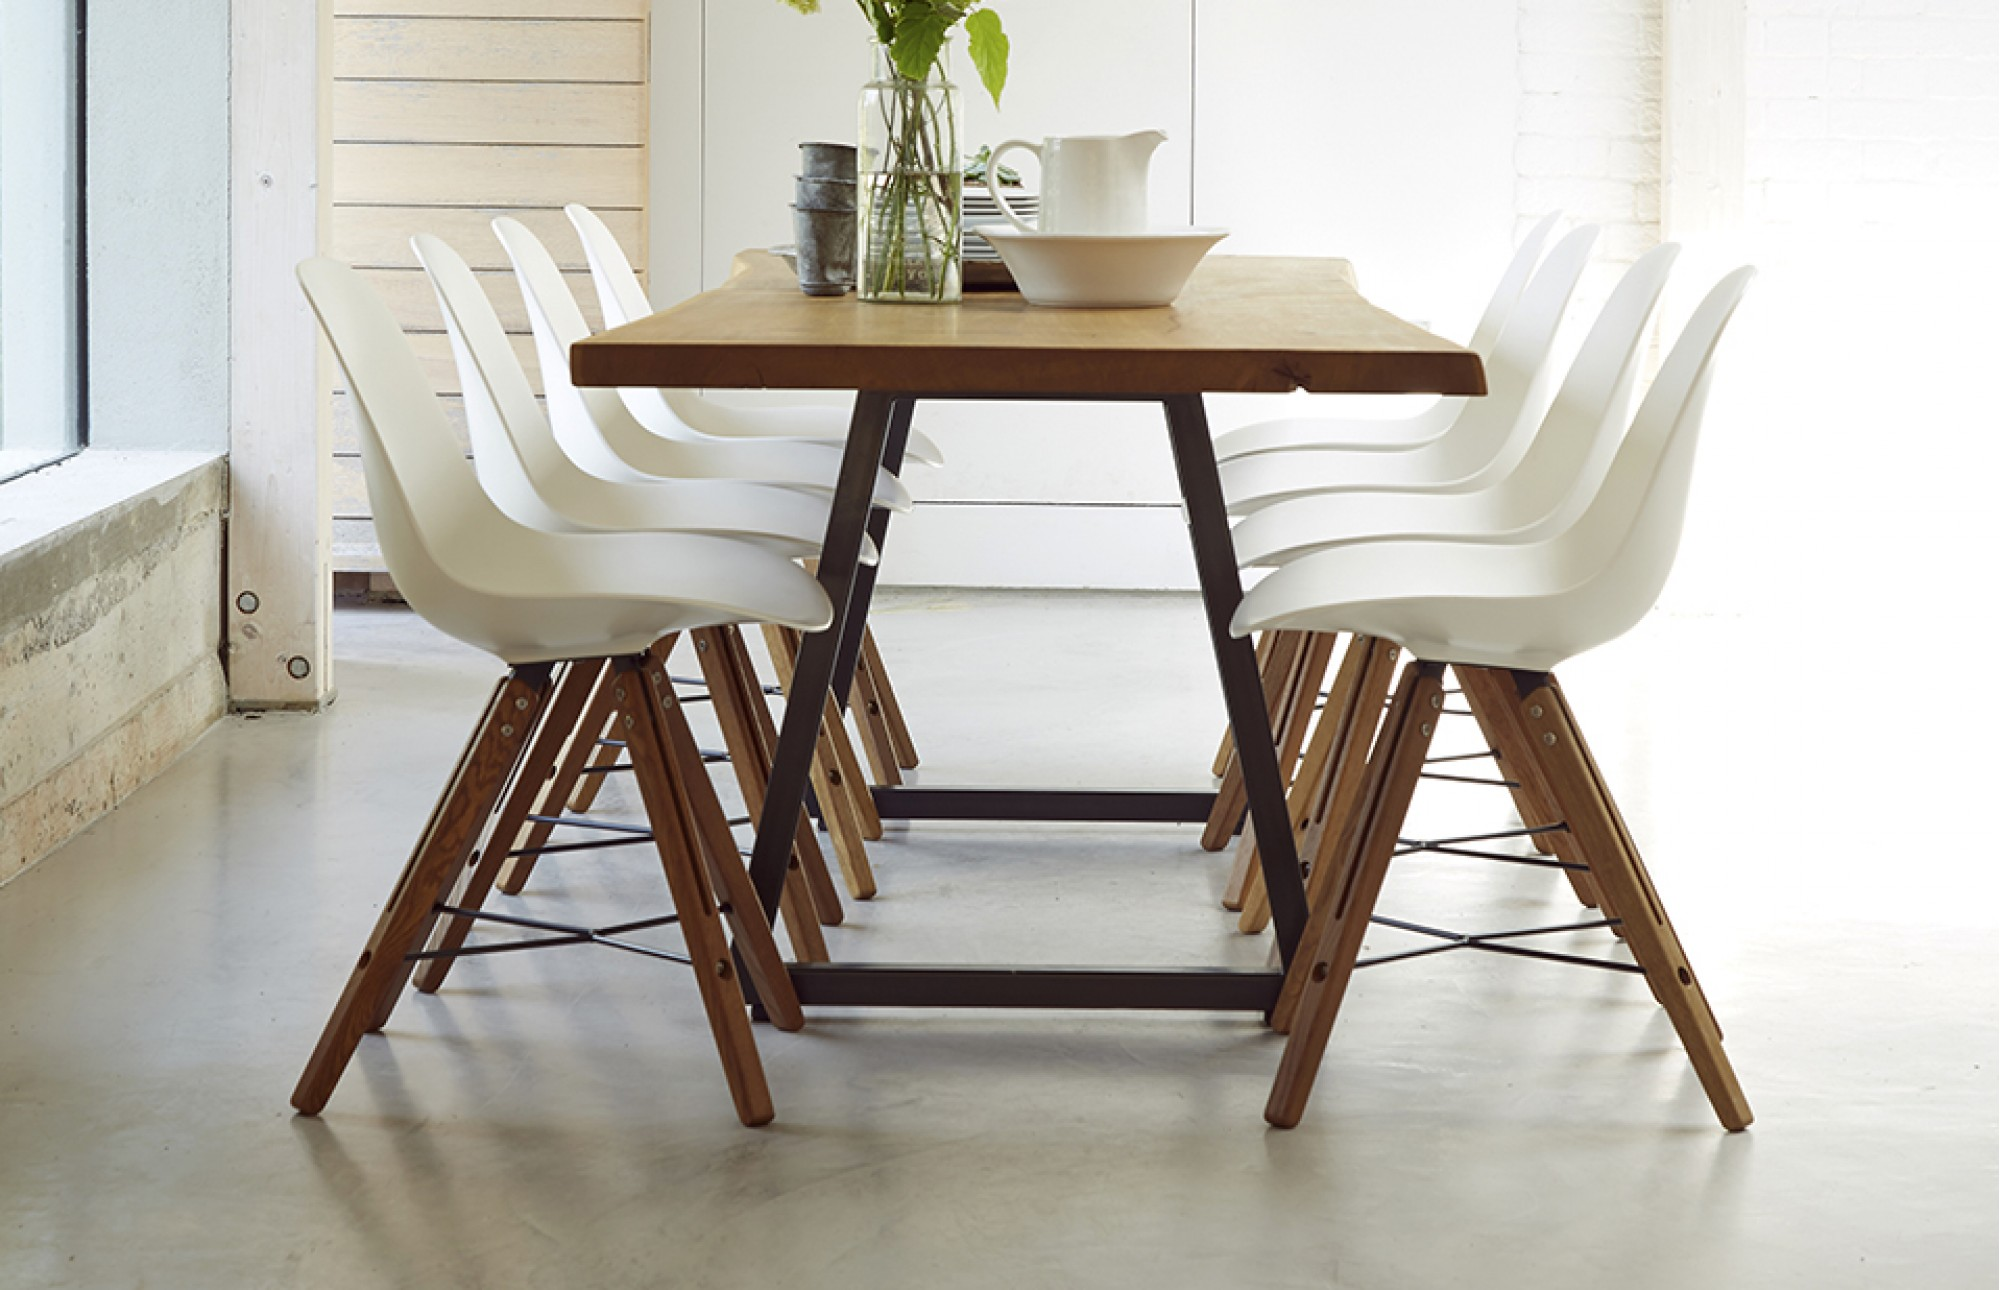 8 seater dining table Swani Furniture 8 seater dining table